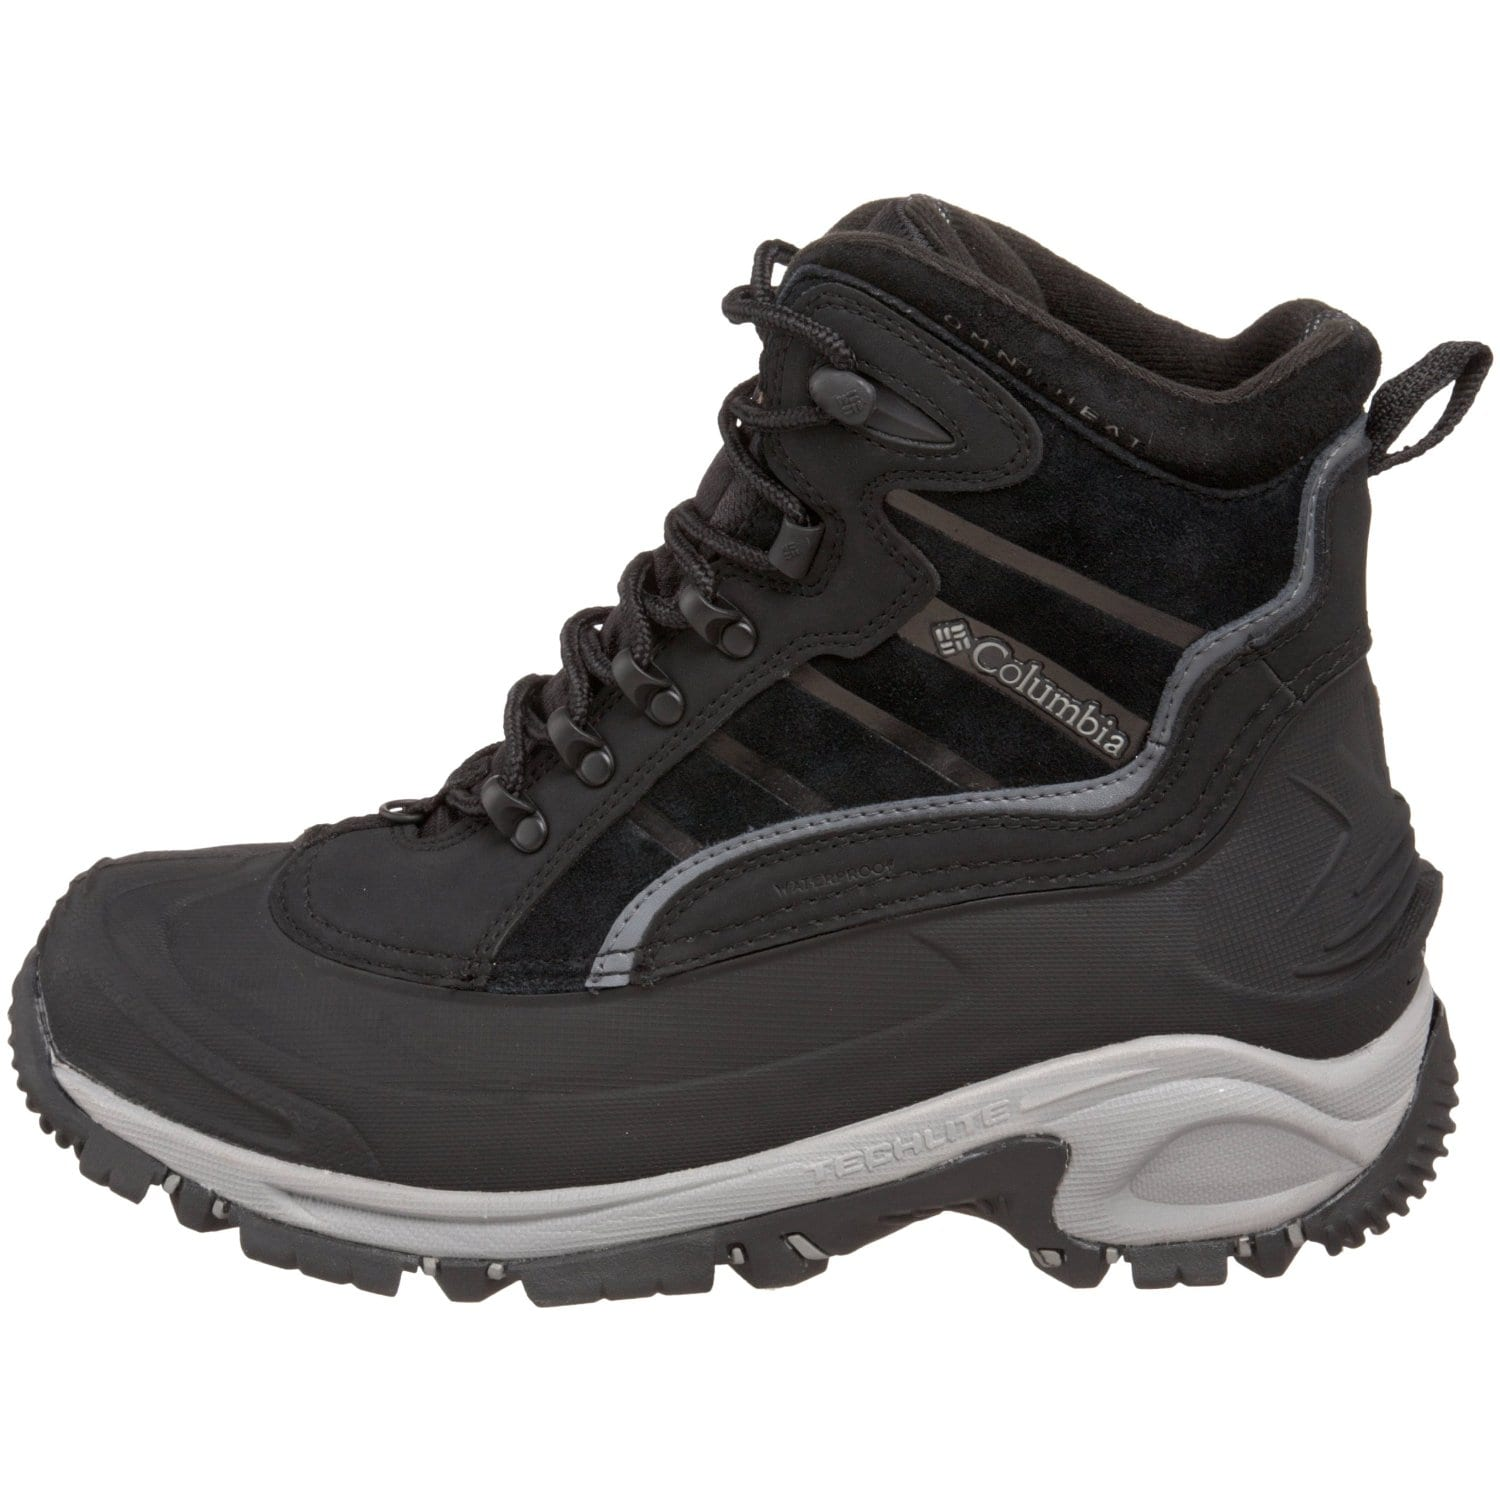 Active Columbia Mens Shoes